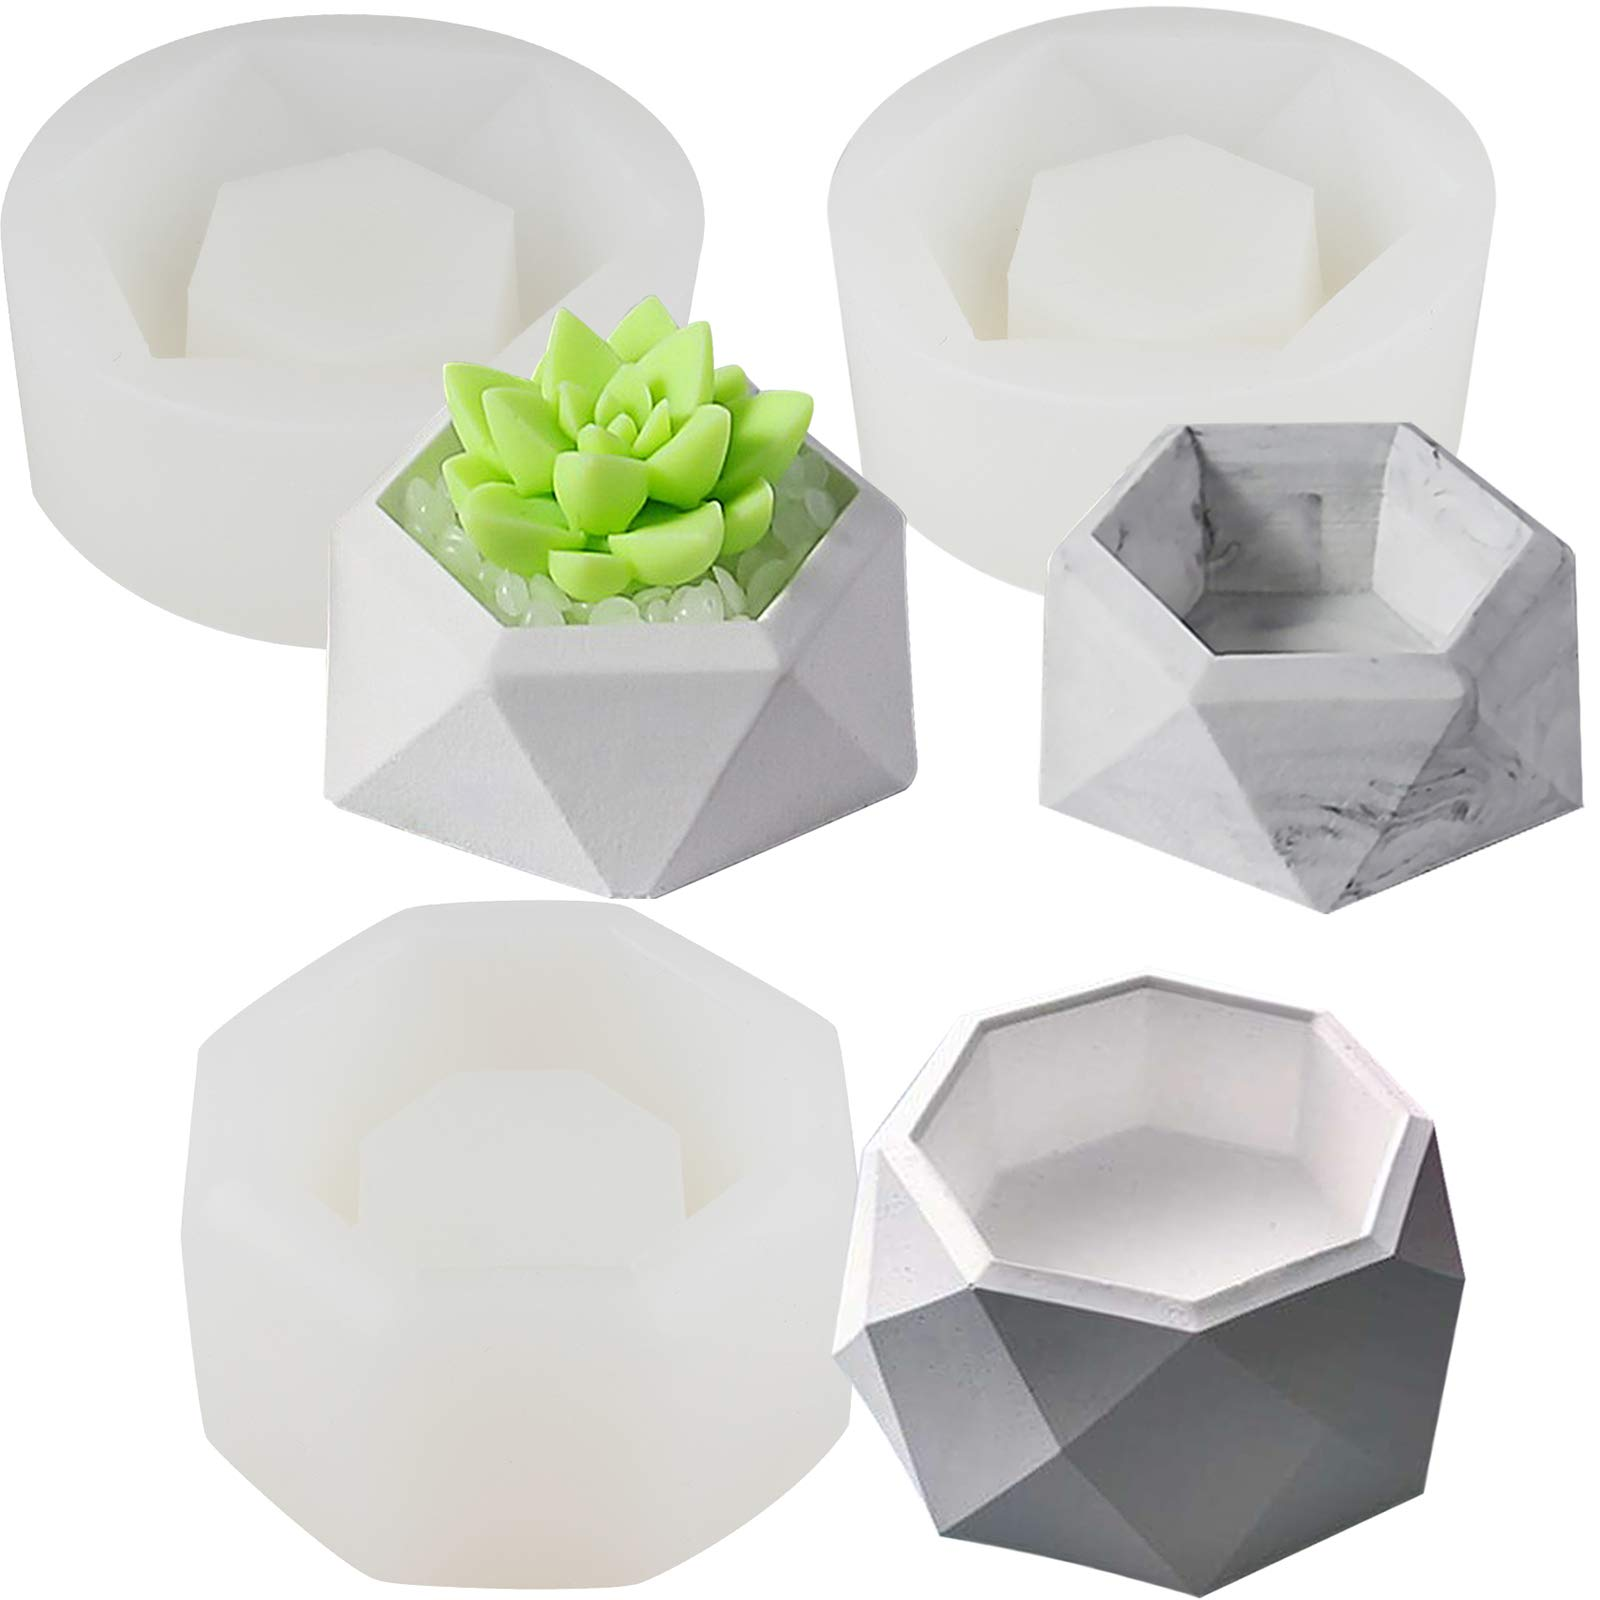 FUNSHOWCASE Faceted Geometry Flower Pot Silicone Molds 3-Count for Epoxy Resin Concrete Clay Succulent Planter Bowl Ashtray Candle Soap Pen Holder